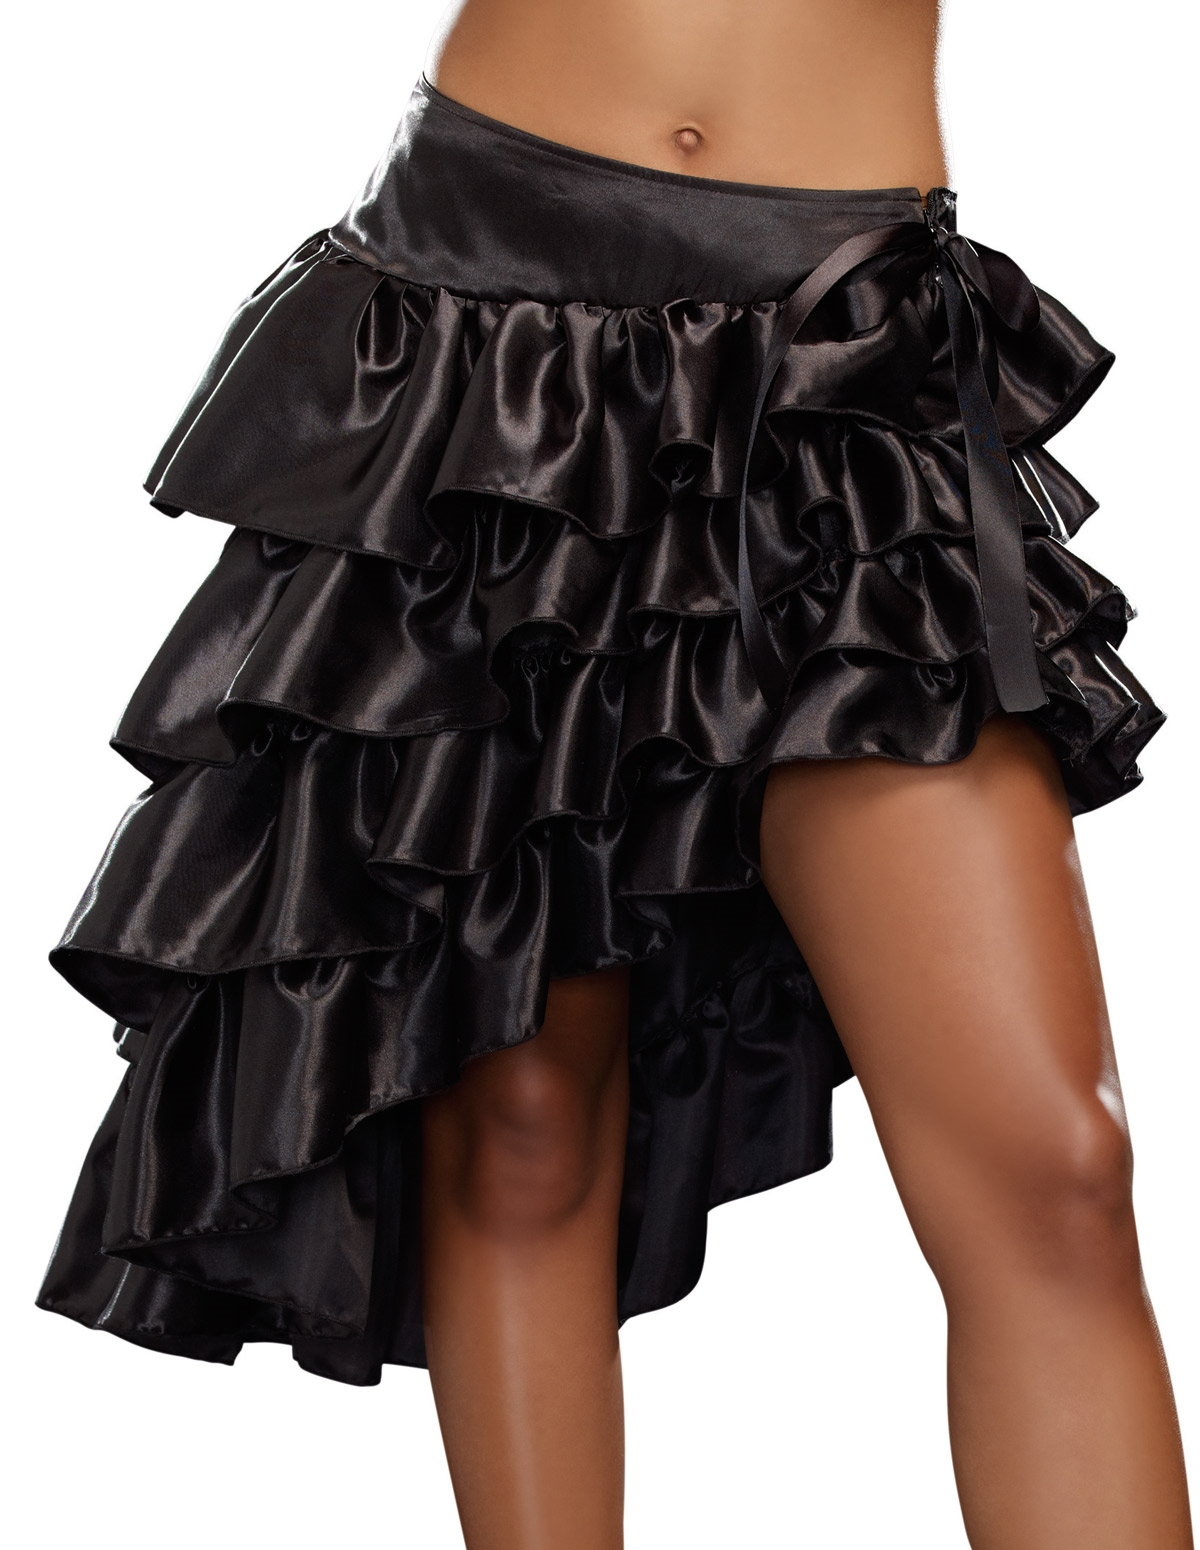 Ruffled Train Skirt